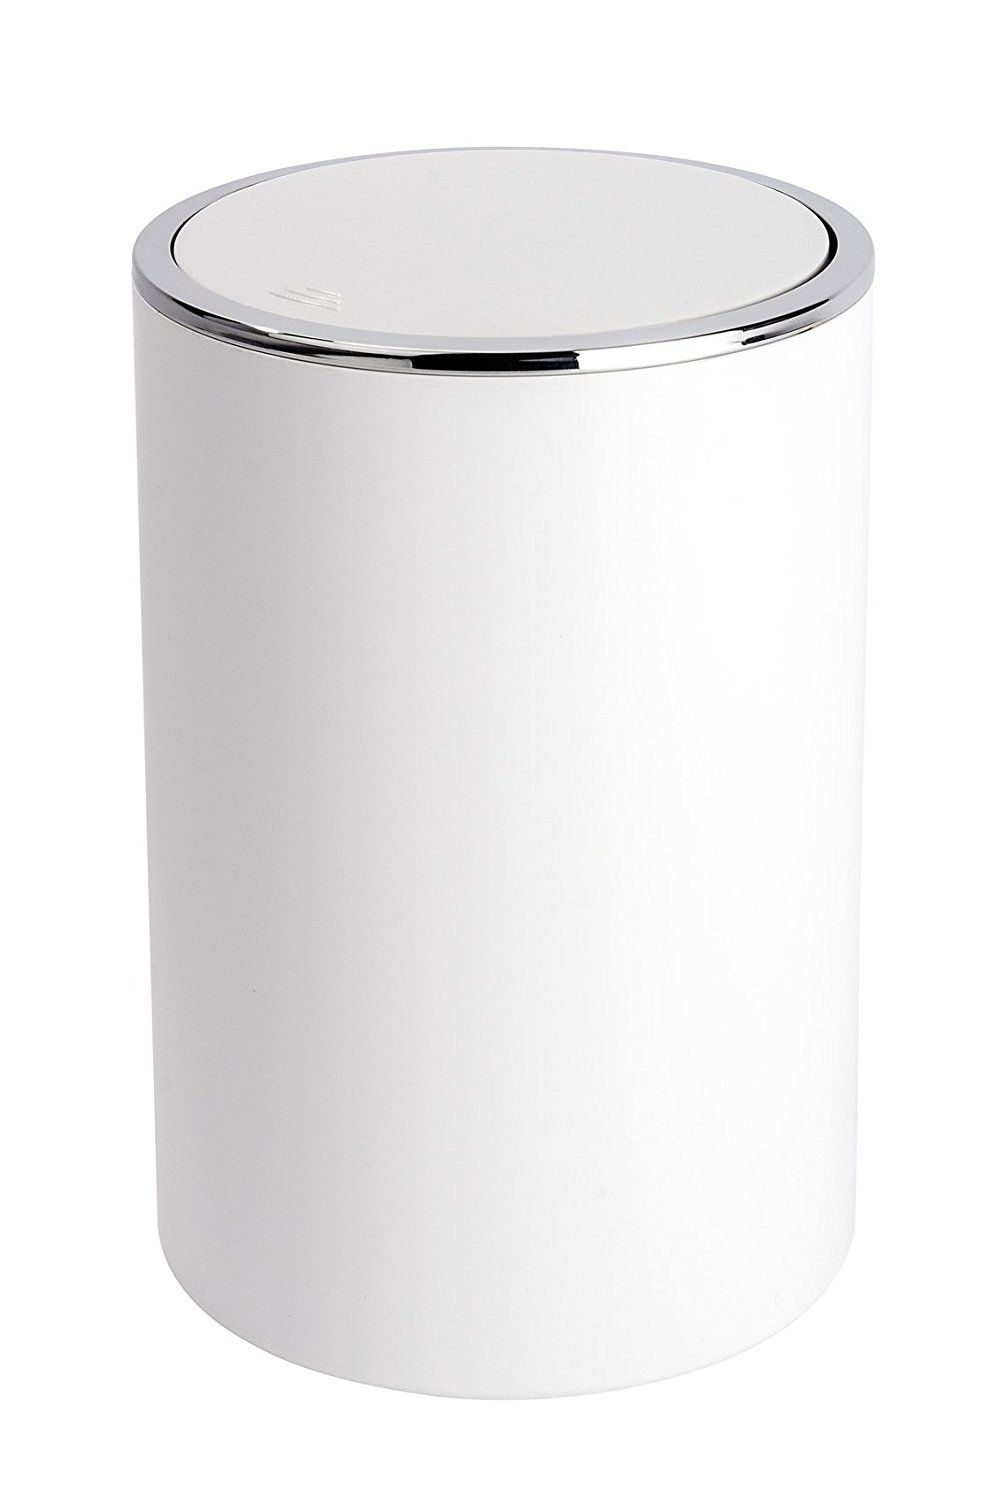 Bathroom Bins | Wenko Inca White Swing Cover Bin 22554100 | New Flat ...